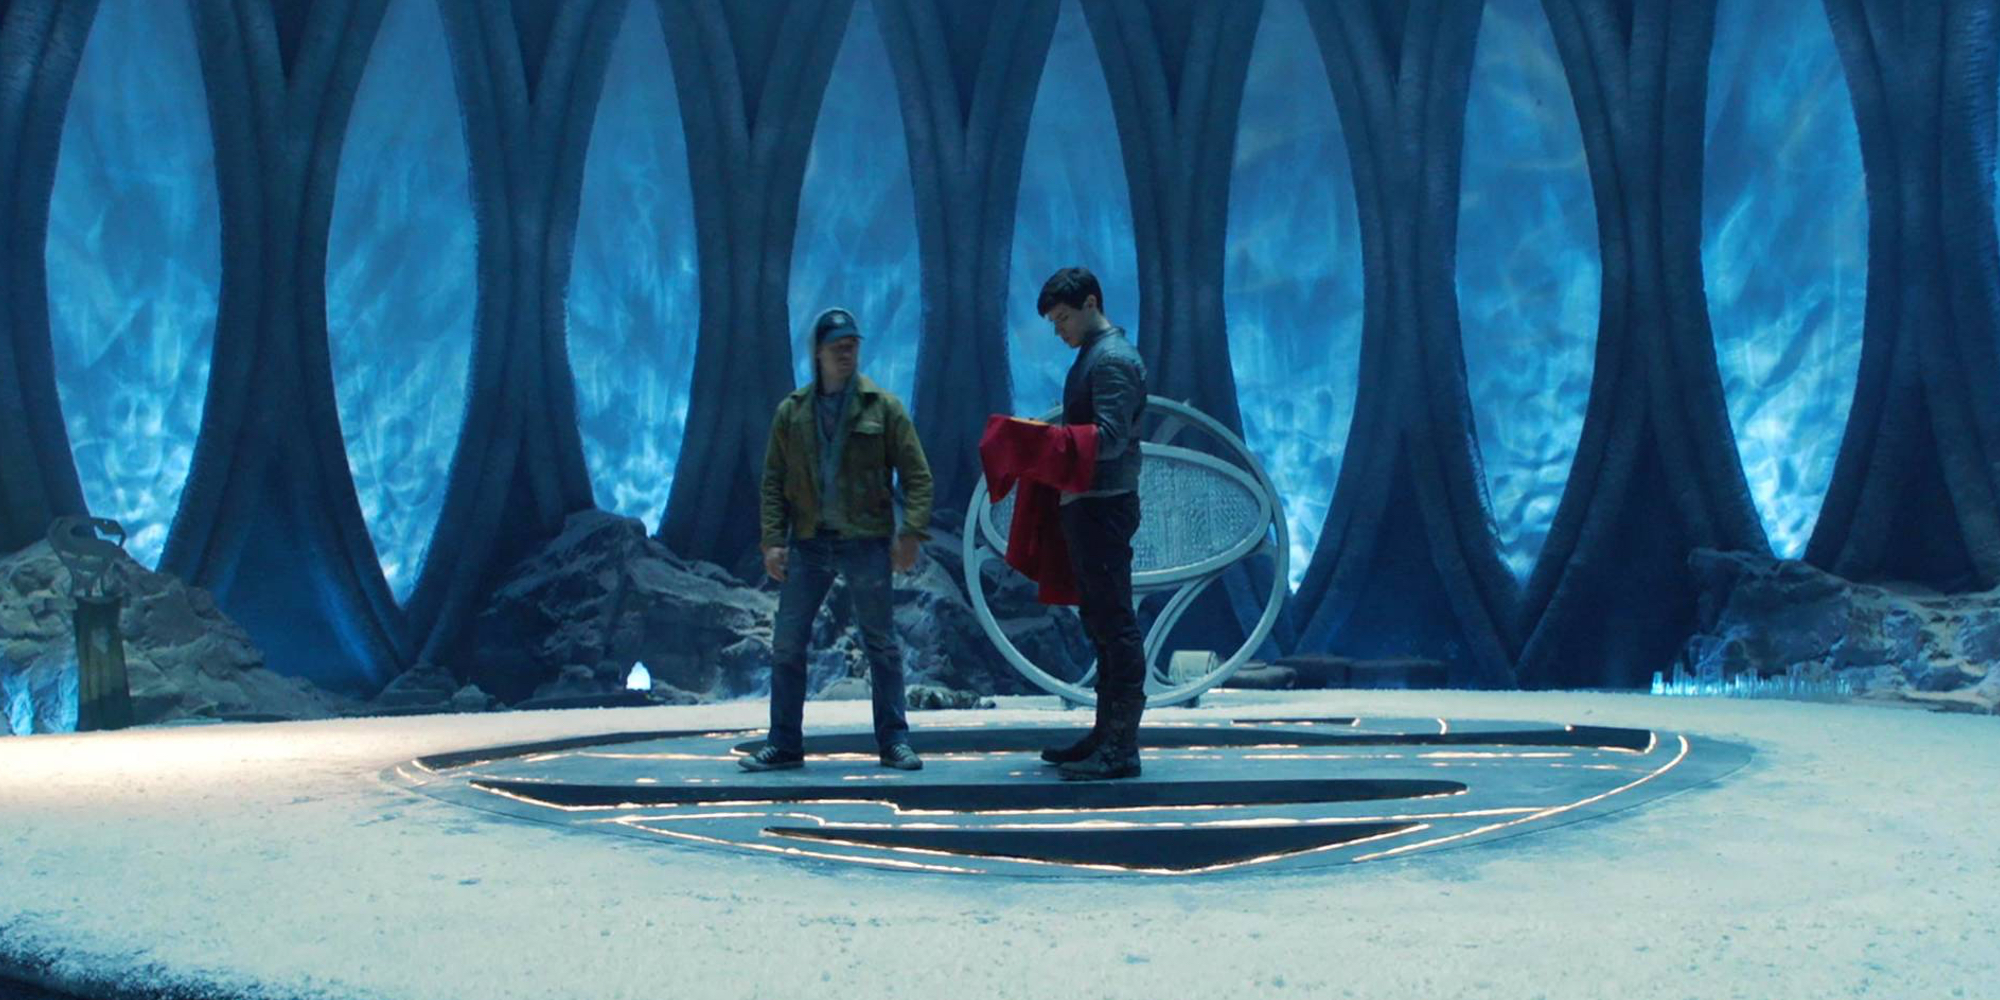 Krypton Fortress of Solitude Syfy